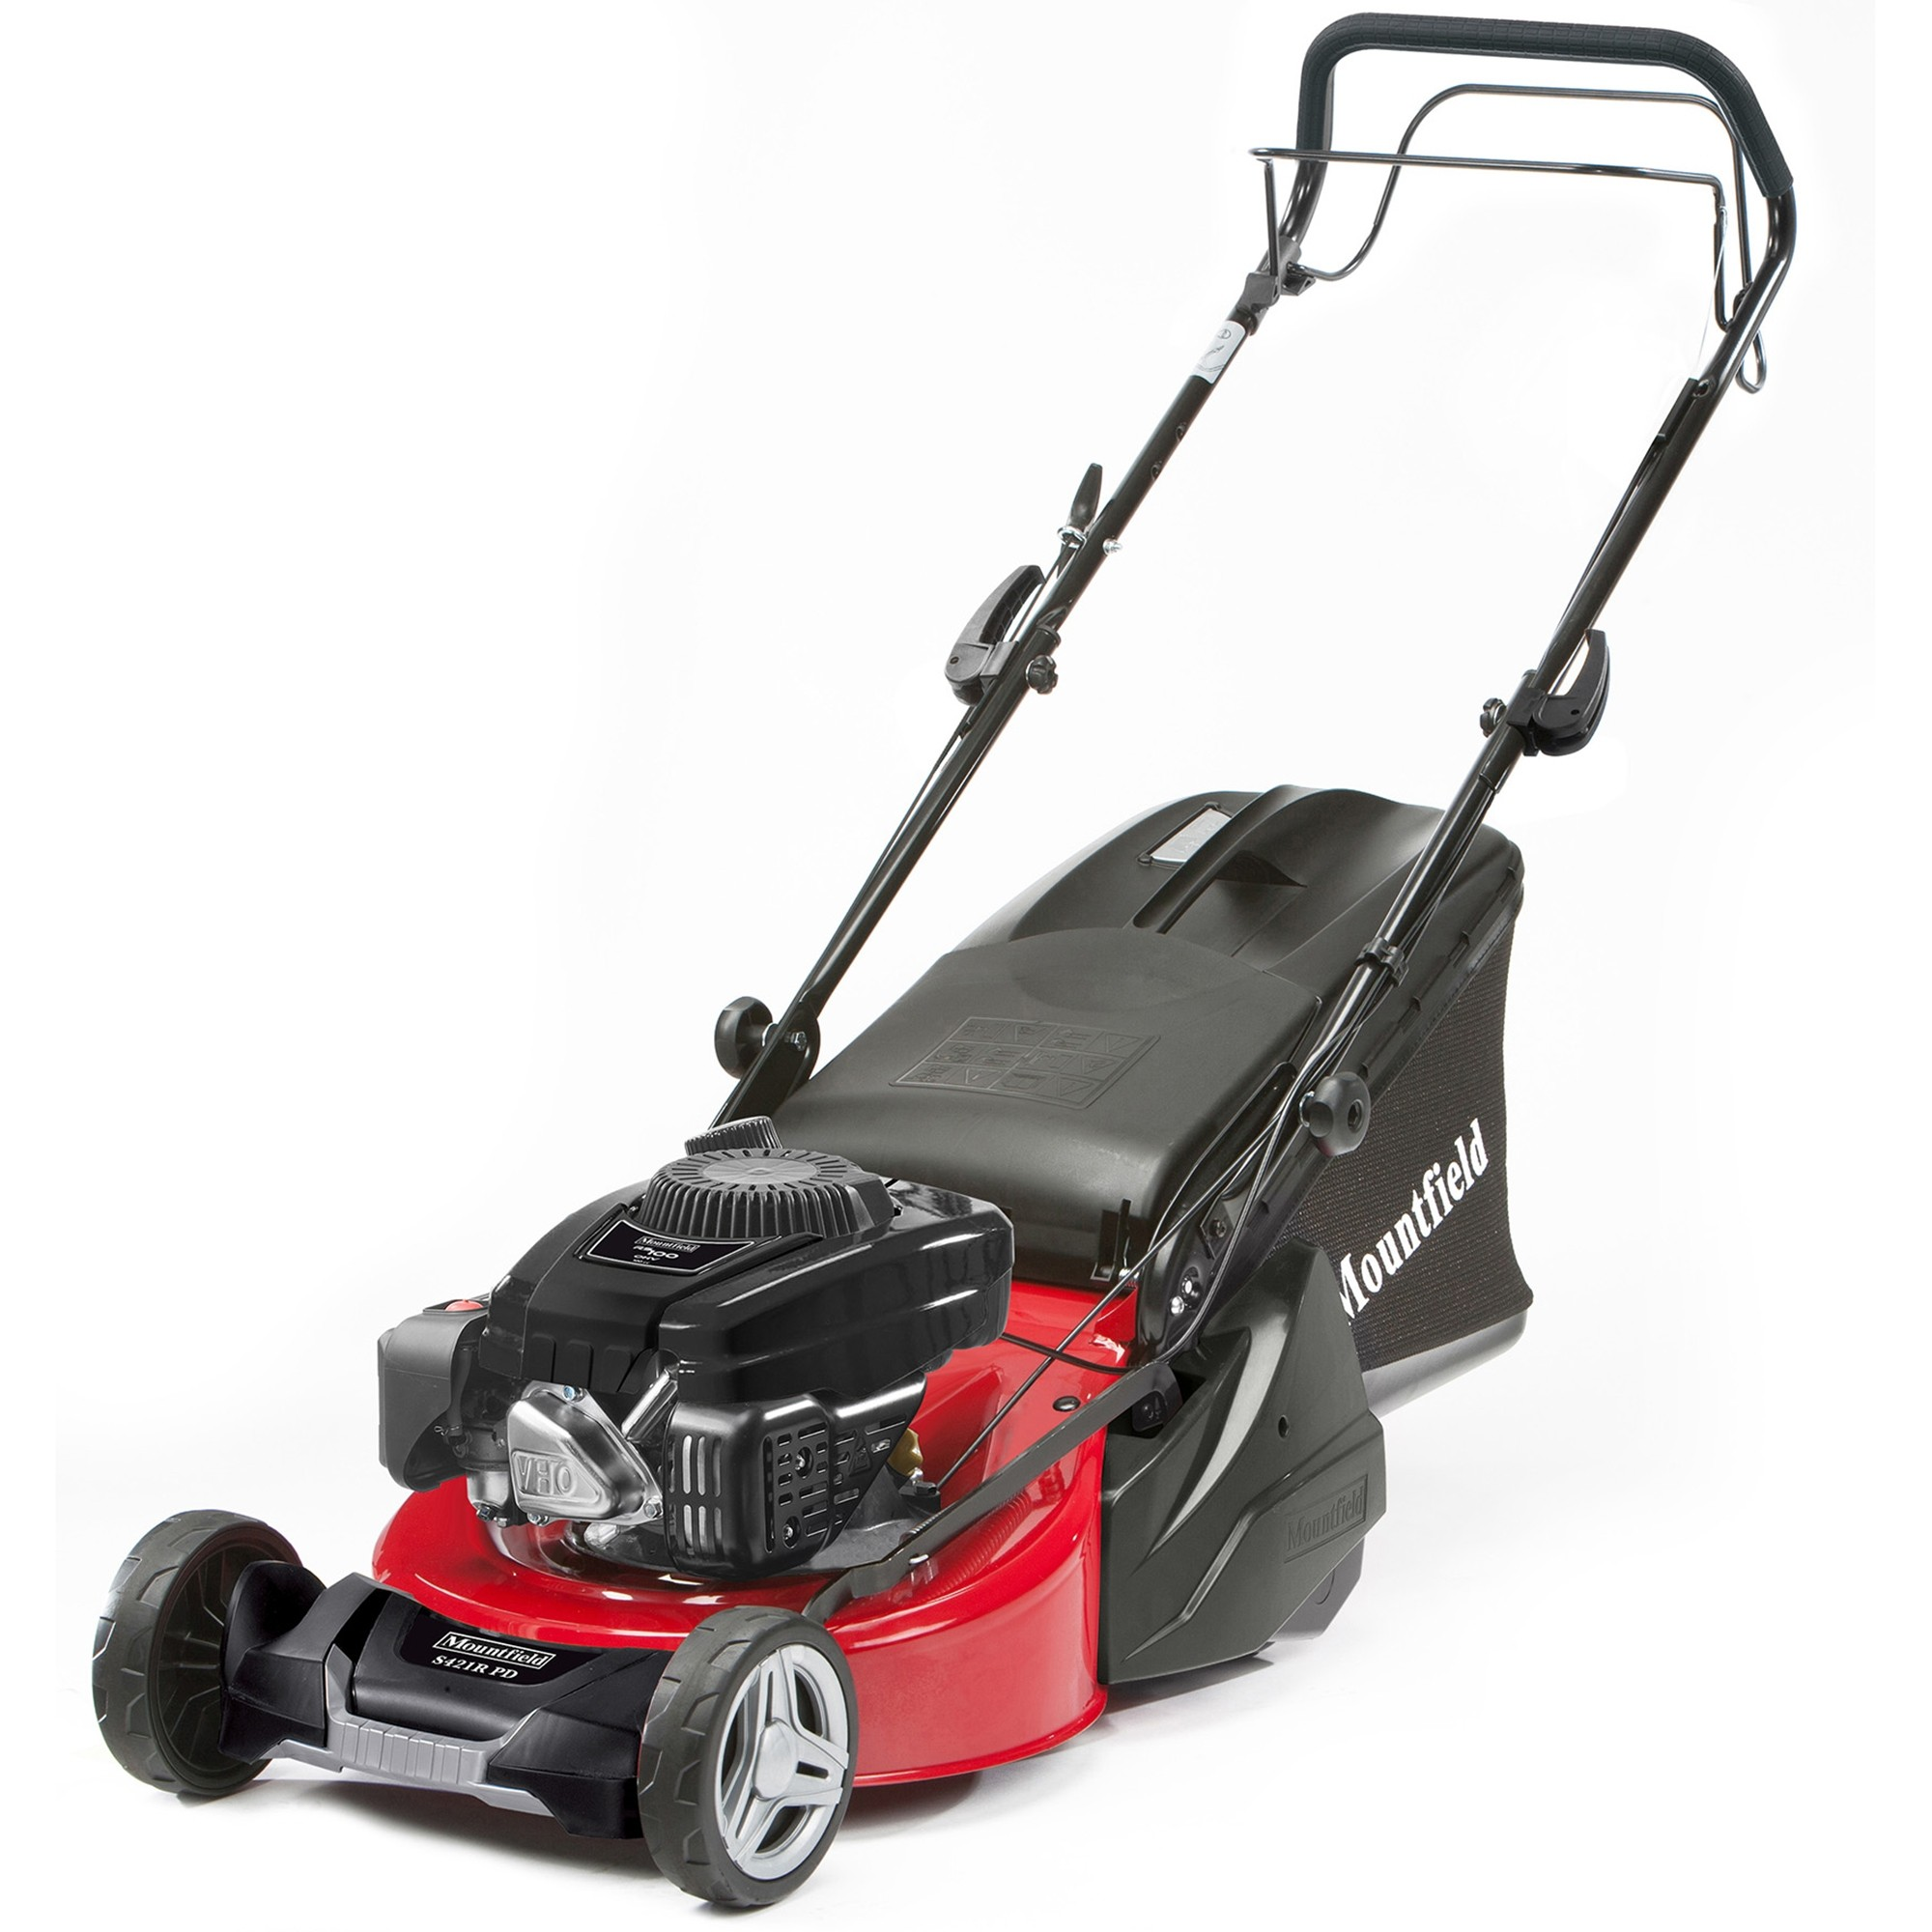 Mountfield S421R PD 41CM Self-propelled Rear Roller Lawnmower